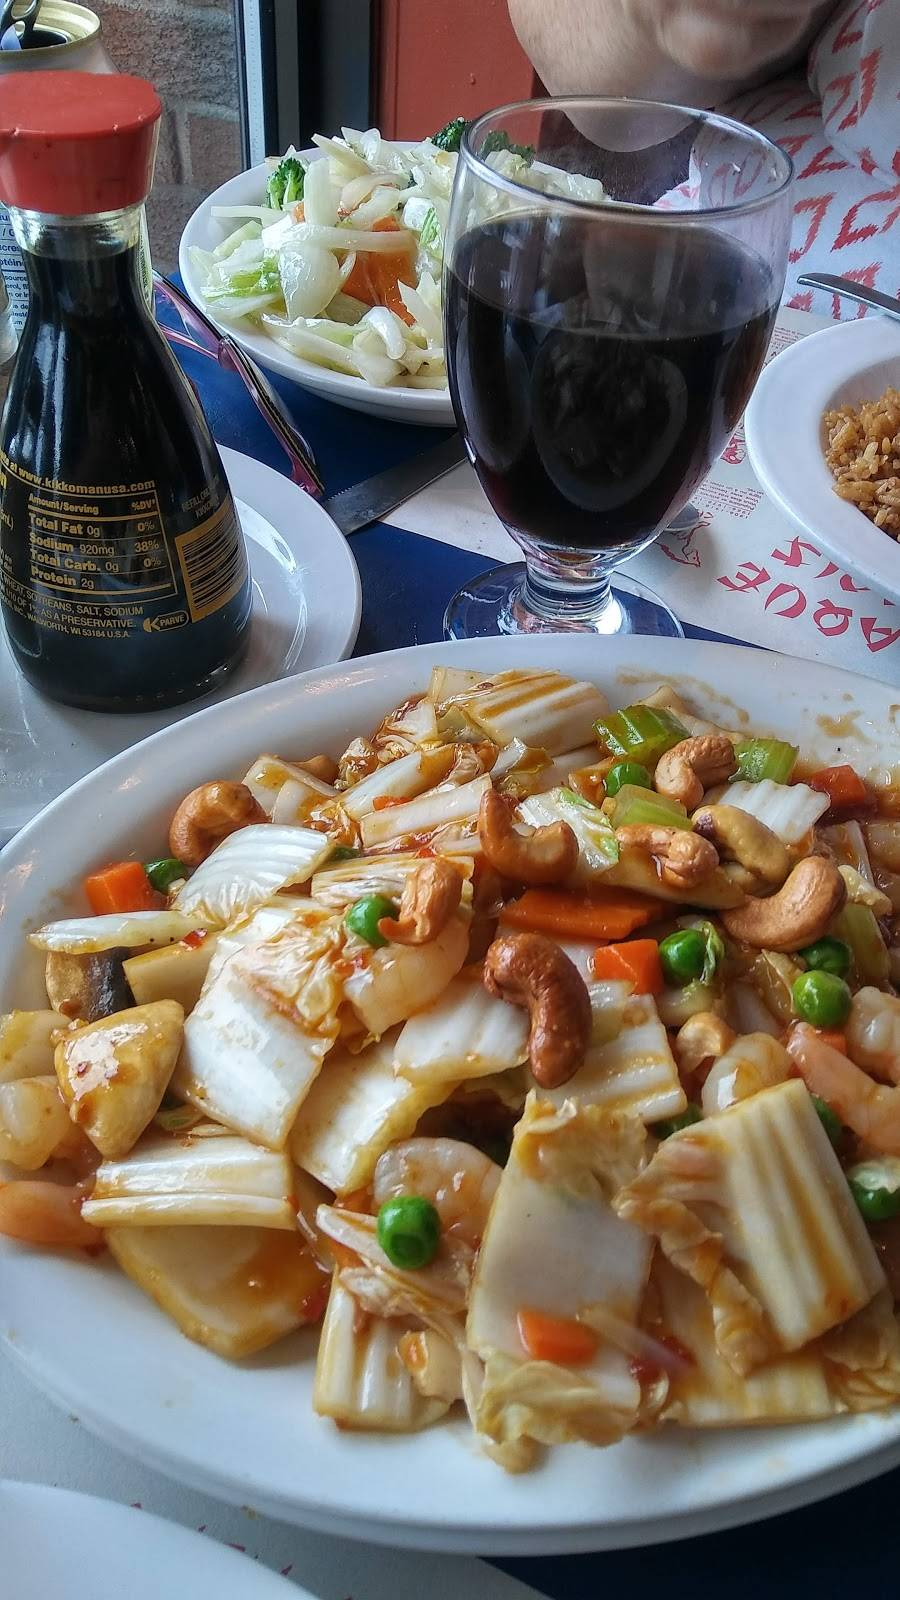 Maison Liang | meal delivery | 177 Boulevard Saint-Jean-Baptiste, Châteauguay, QC J6K 3B4, Canada | 4506921160 OR +1 450-692-1160